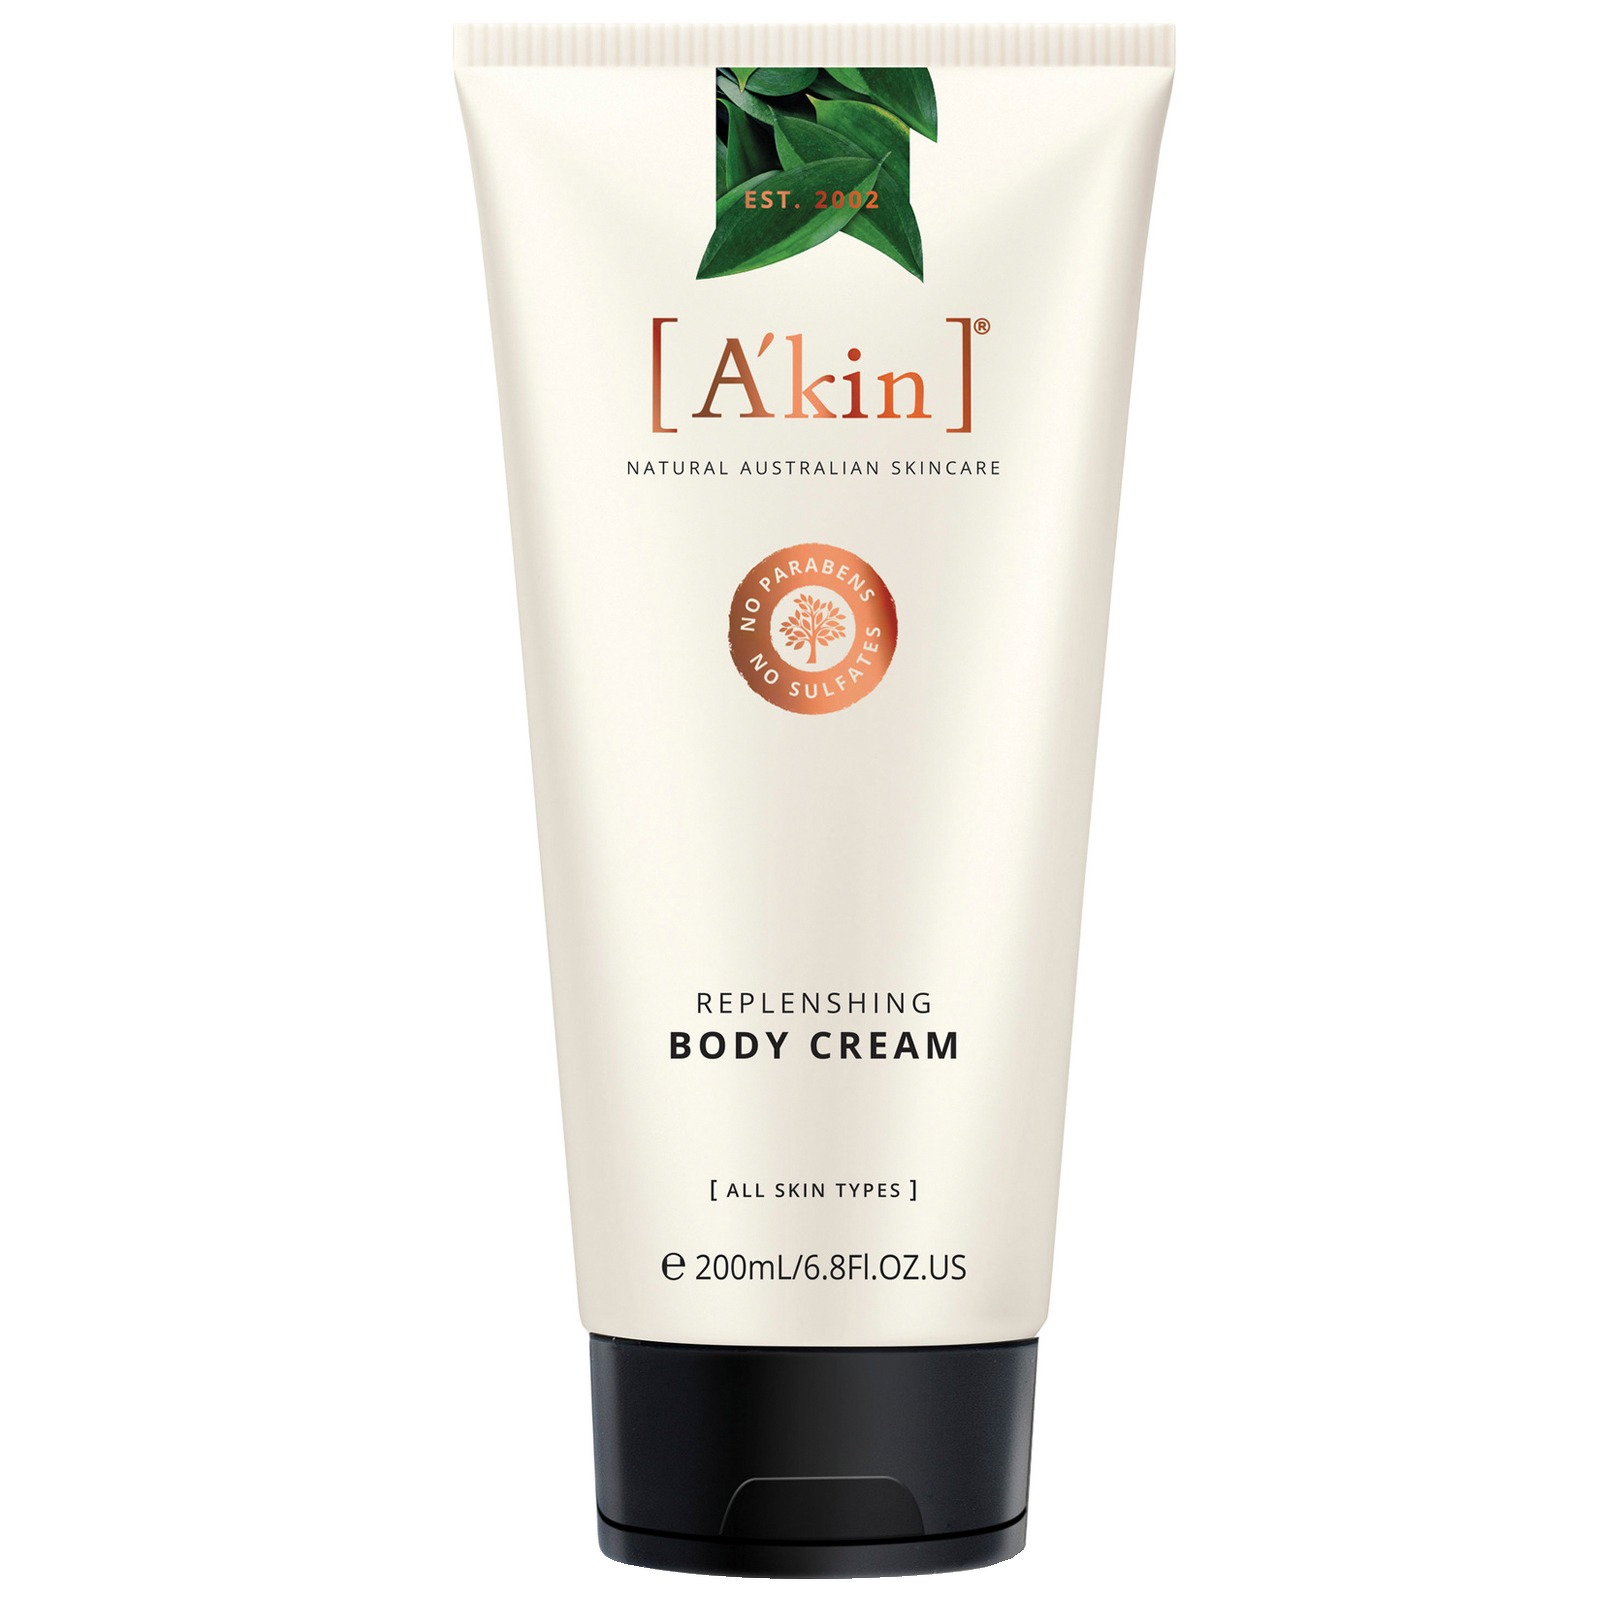 A'kin Hand & Body Replenishing Body Cream 200ml